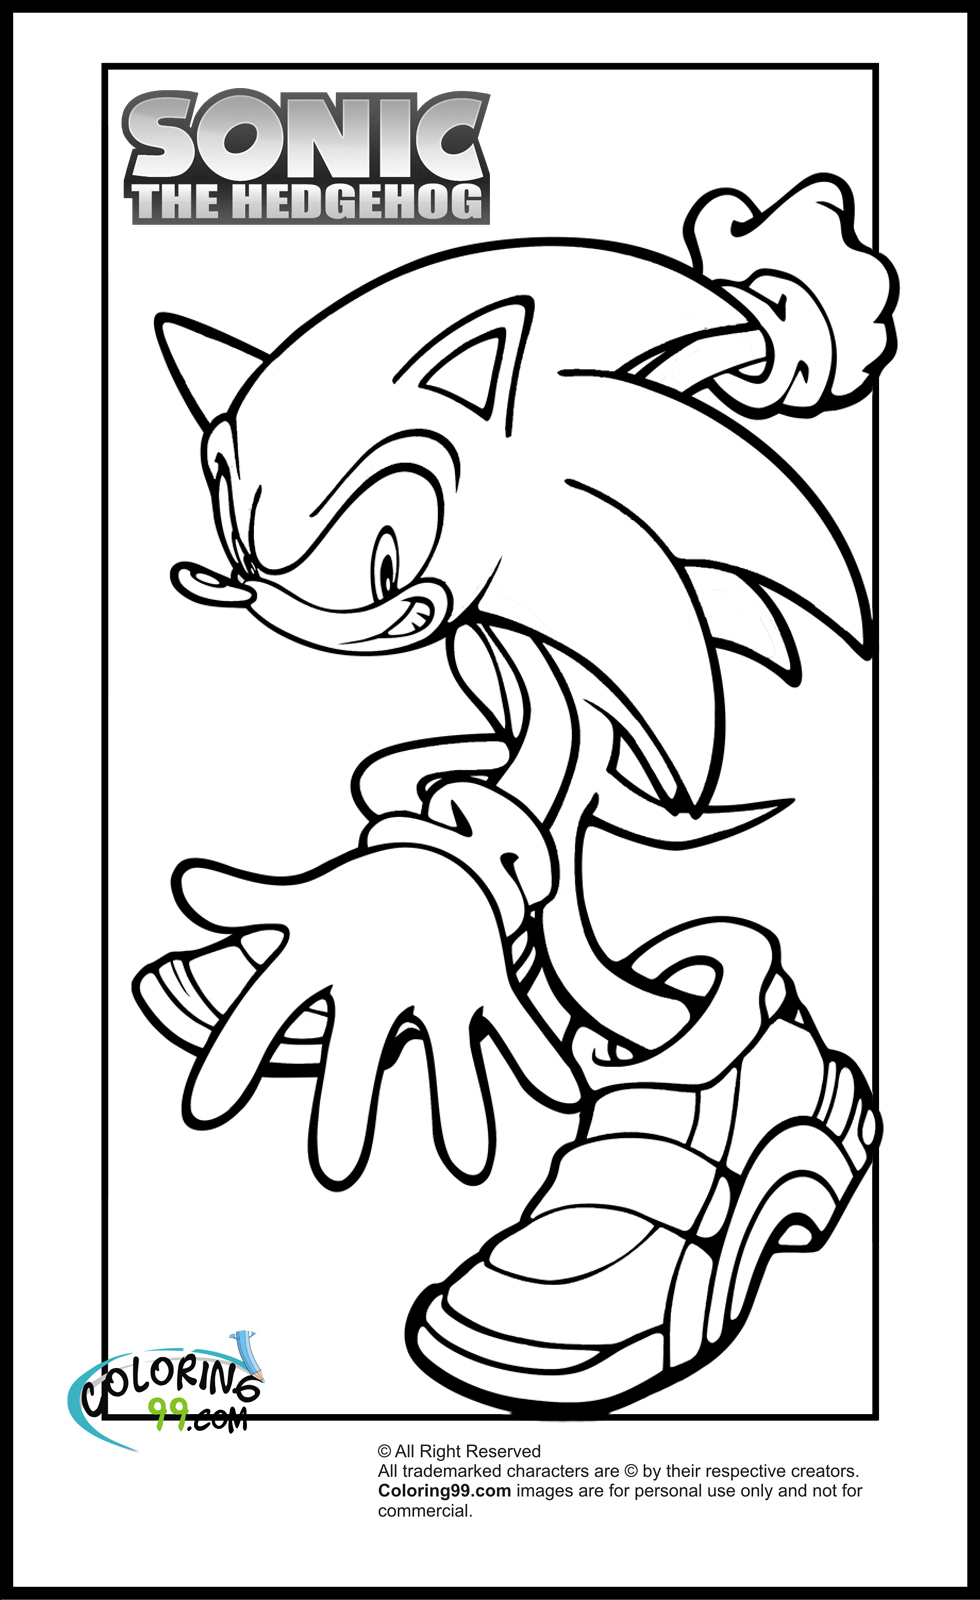 sonic printable sonic the hedgehog coloring pages to download and print sonic printable